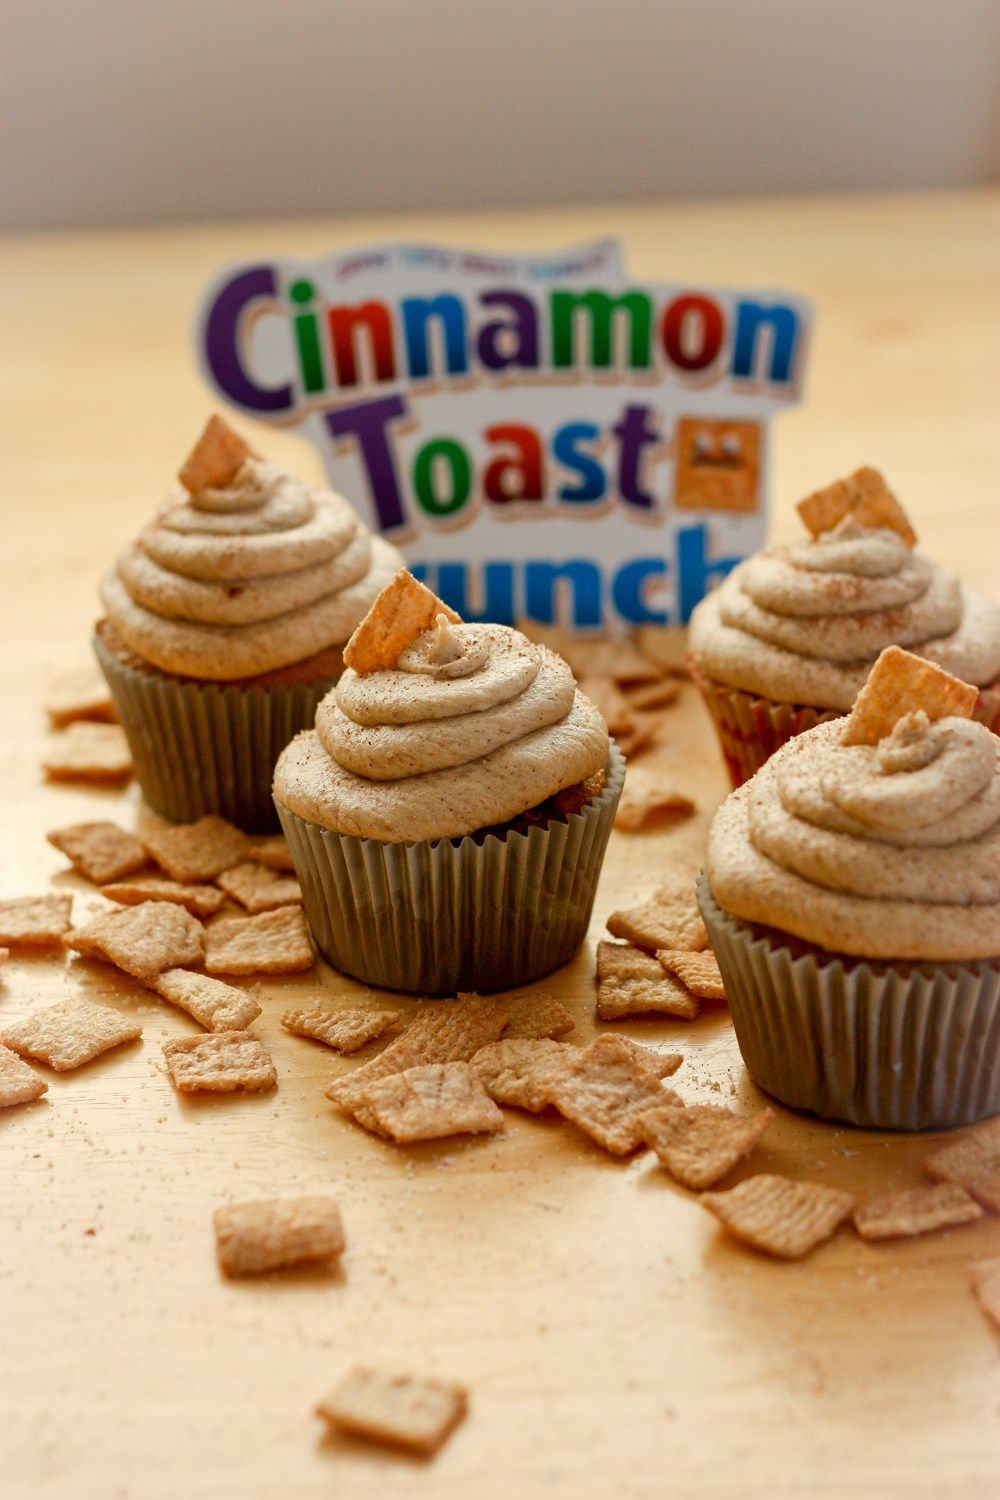 Cinnamon toast crunch cupcakes with images cinnamon